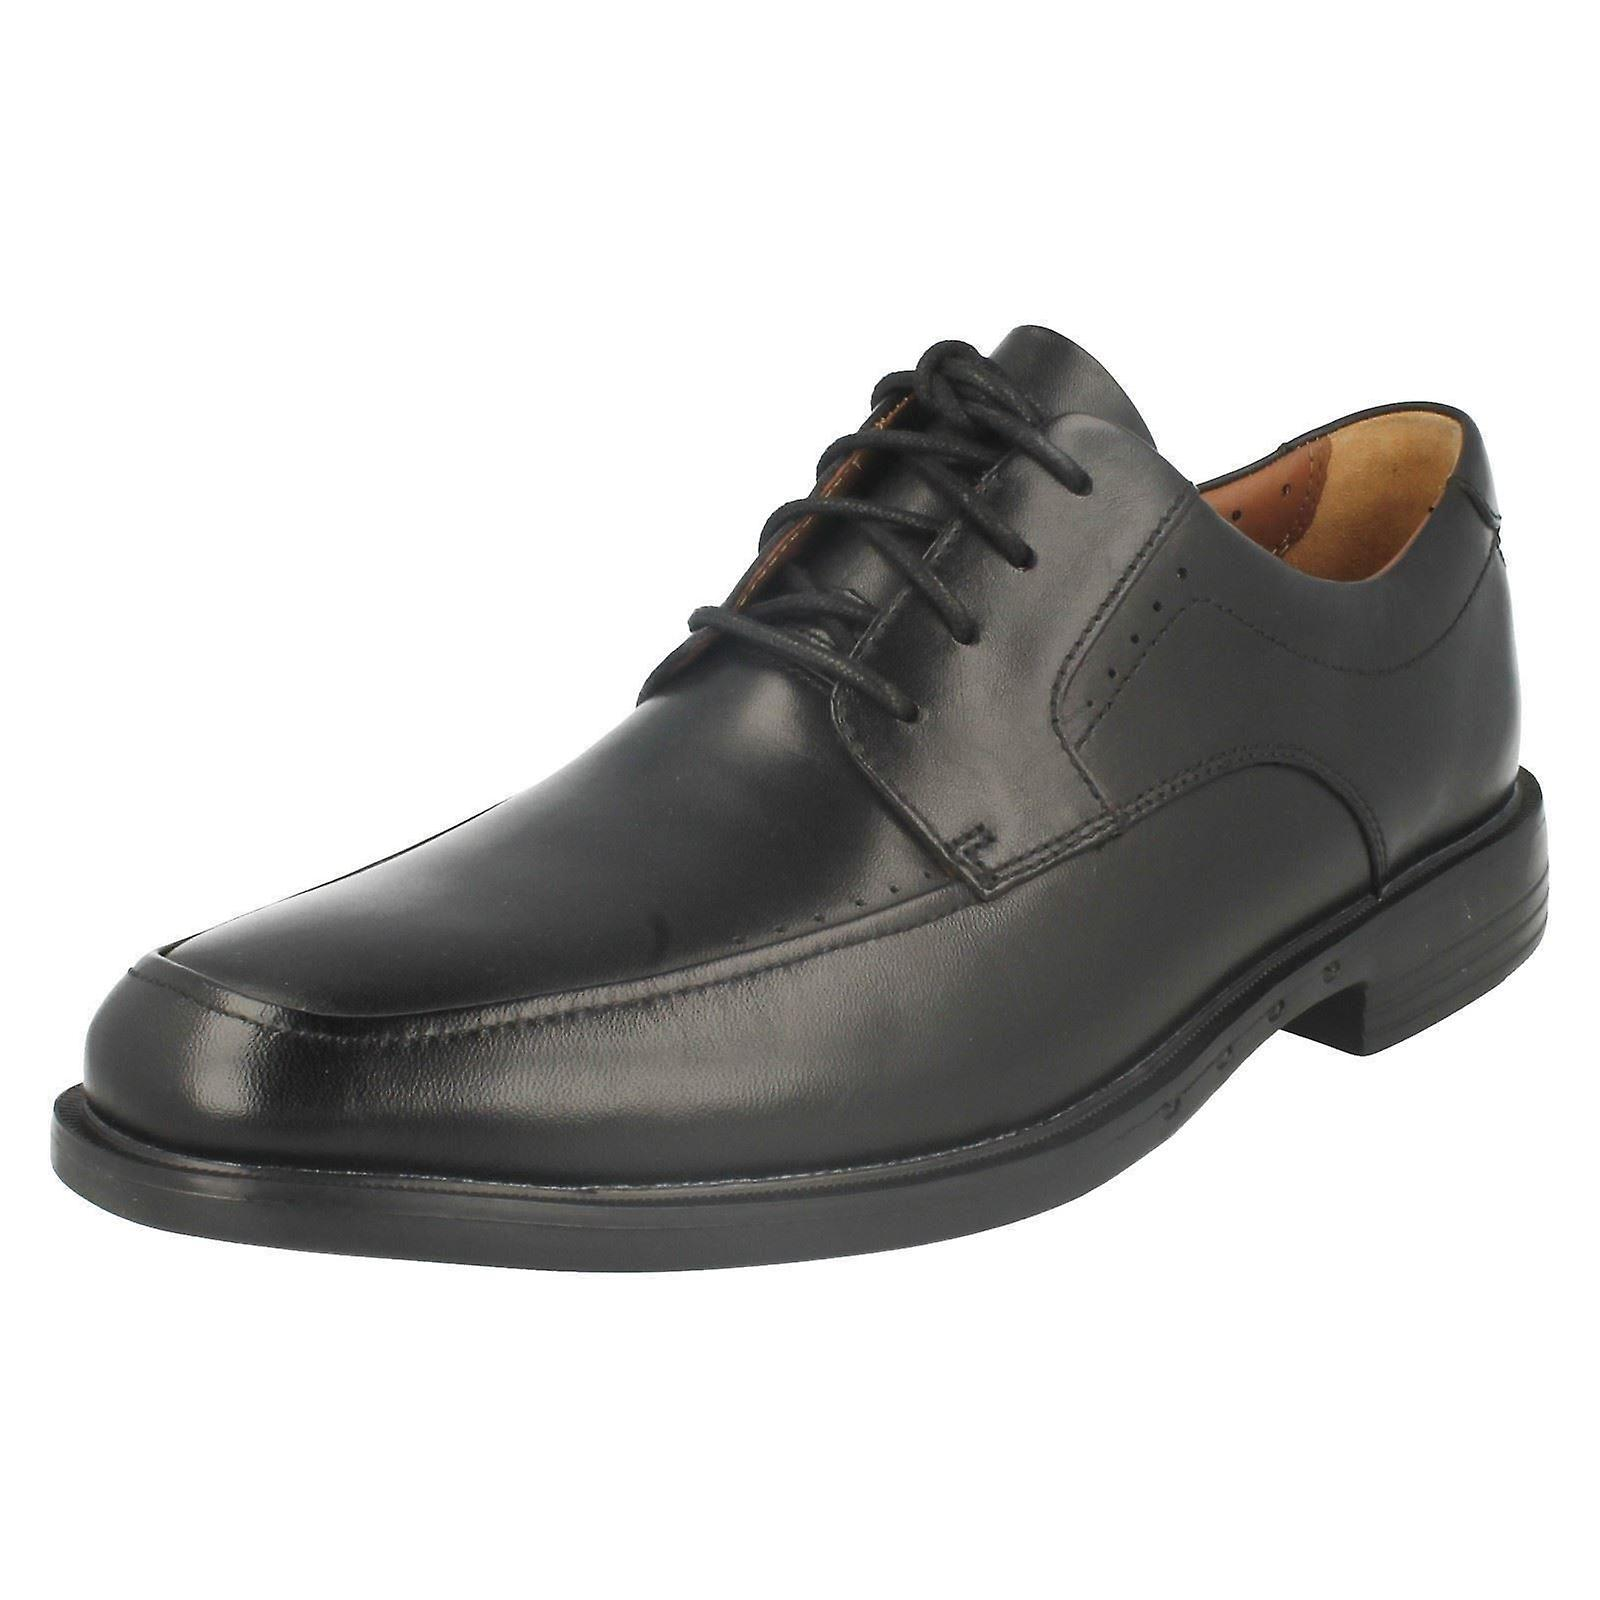 Shoes Clarks Unbizley View Unstructured Mens aPqx8n